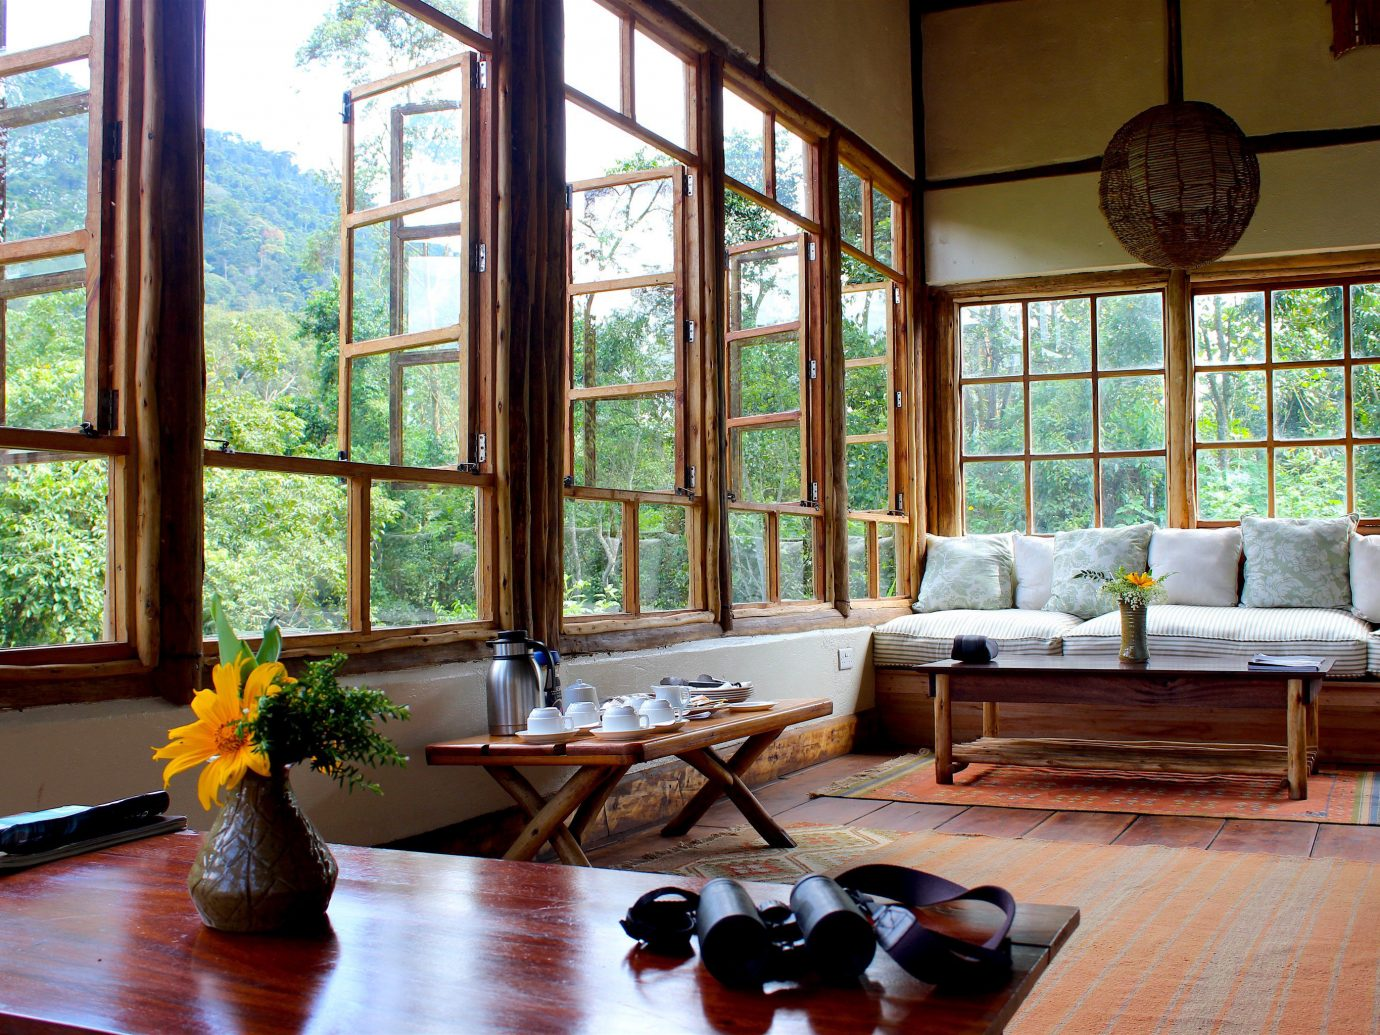 Adventure Hotels Off-the-beaten Path Outdoors + Adventure Trip Ideas window indoor Living room floor table living room interior design Fireplace home wood house real estate furniture flooring daylighting overlooking decorated